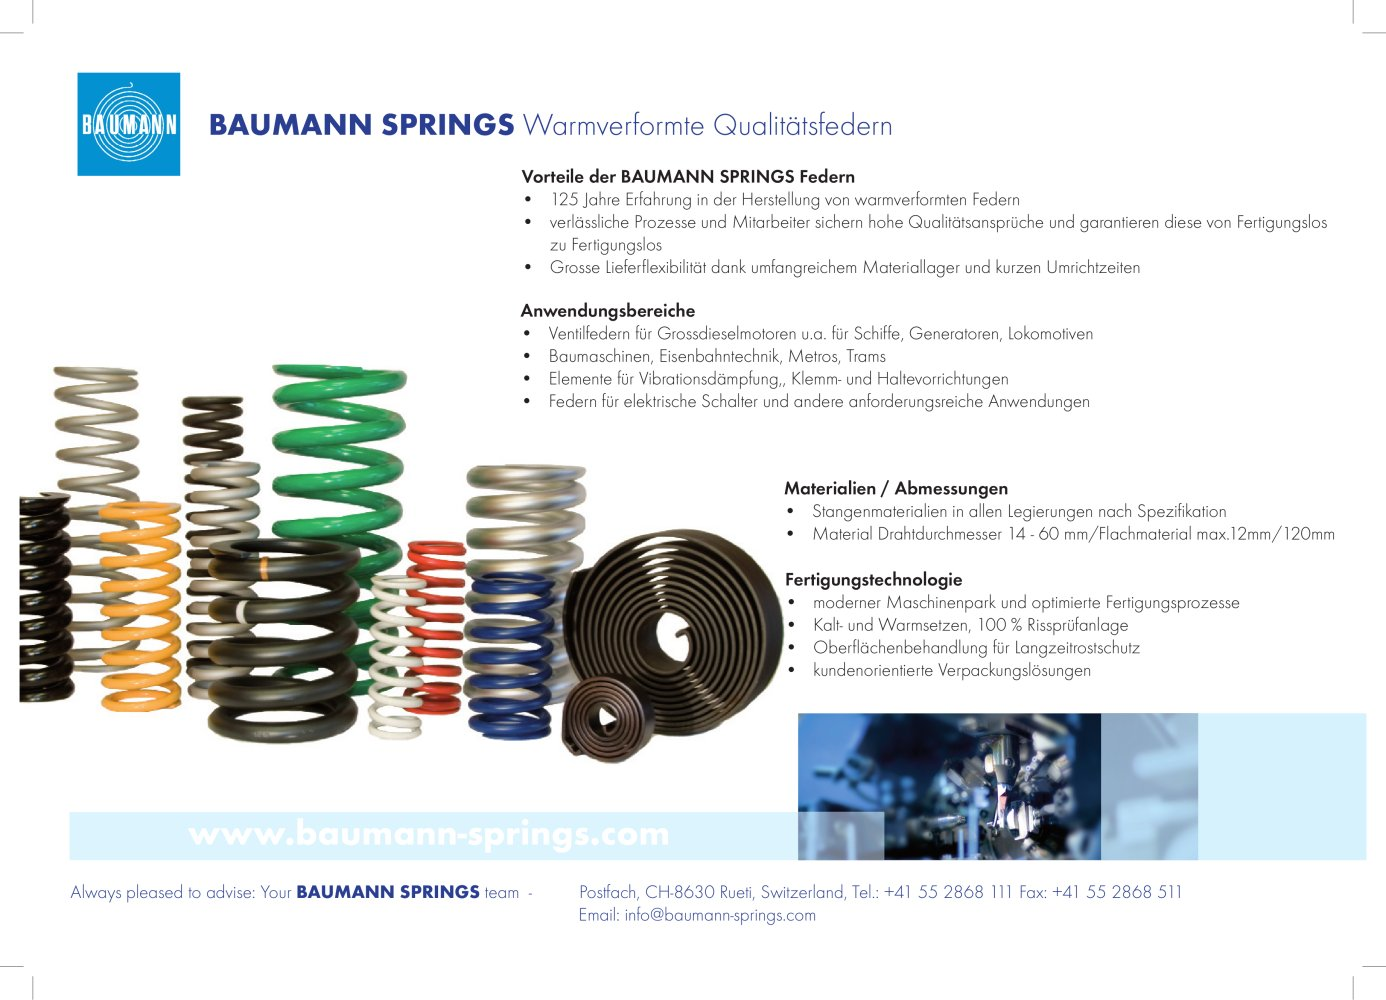 Warmverformte Qualitätsfedern - BAUMANN SPRINGS LTD. - Catalogo PDF ...